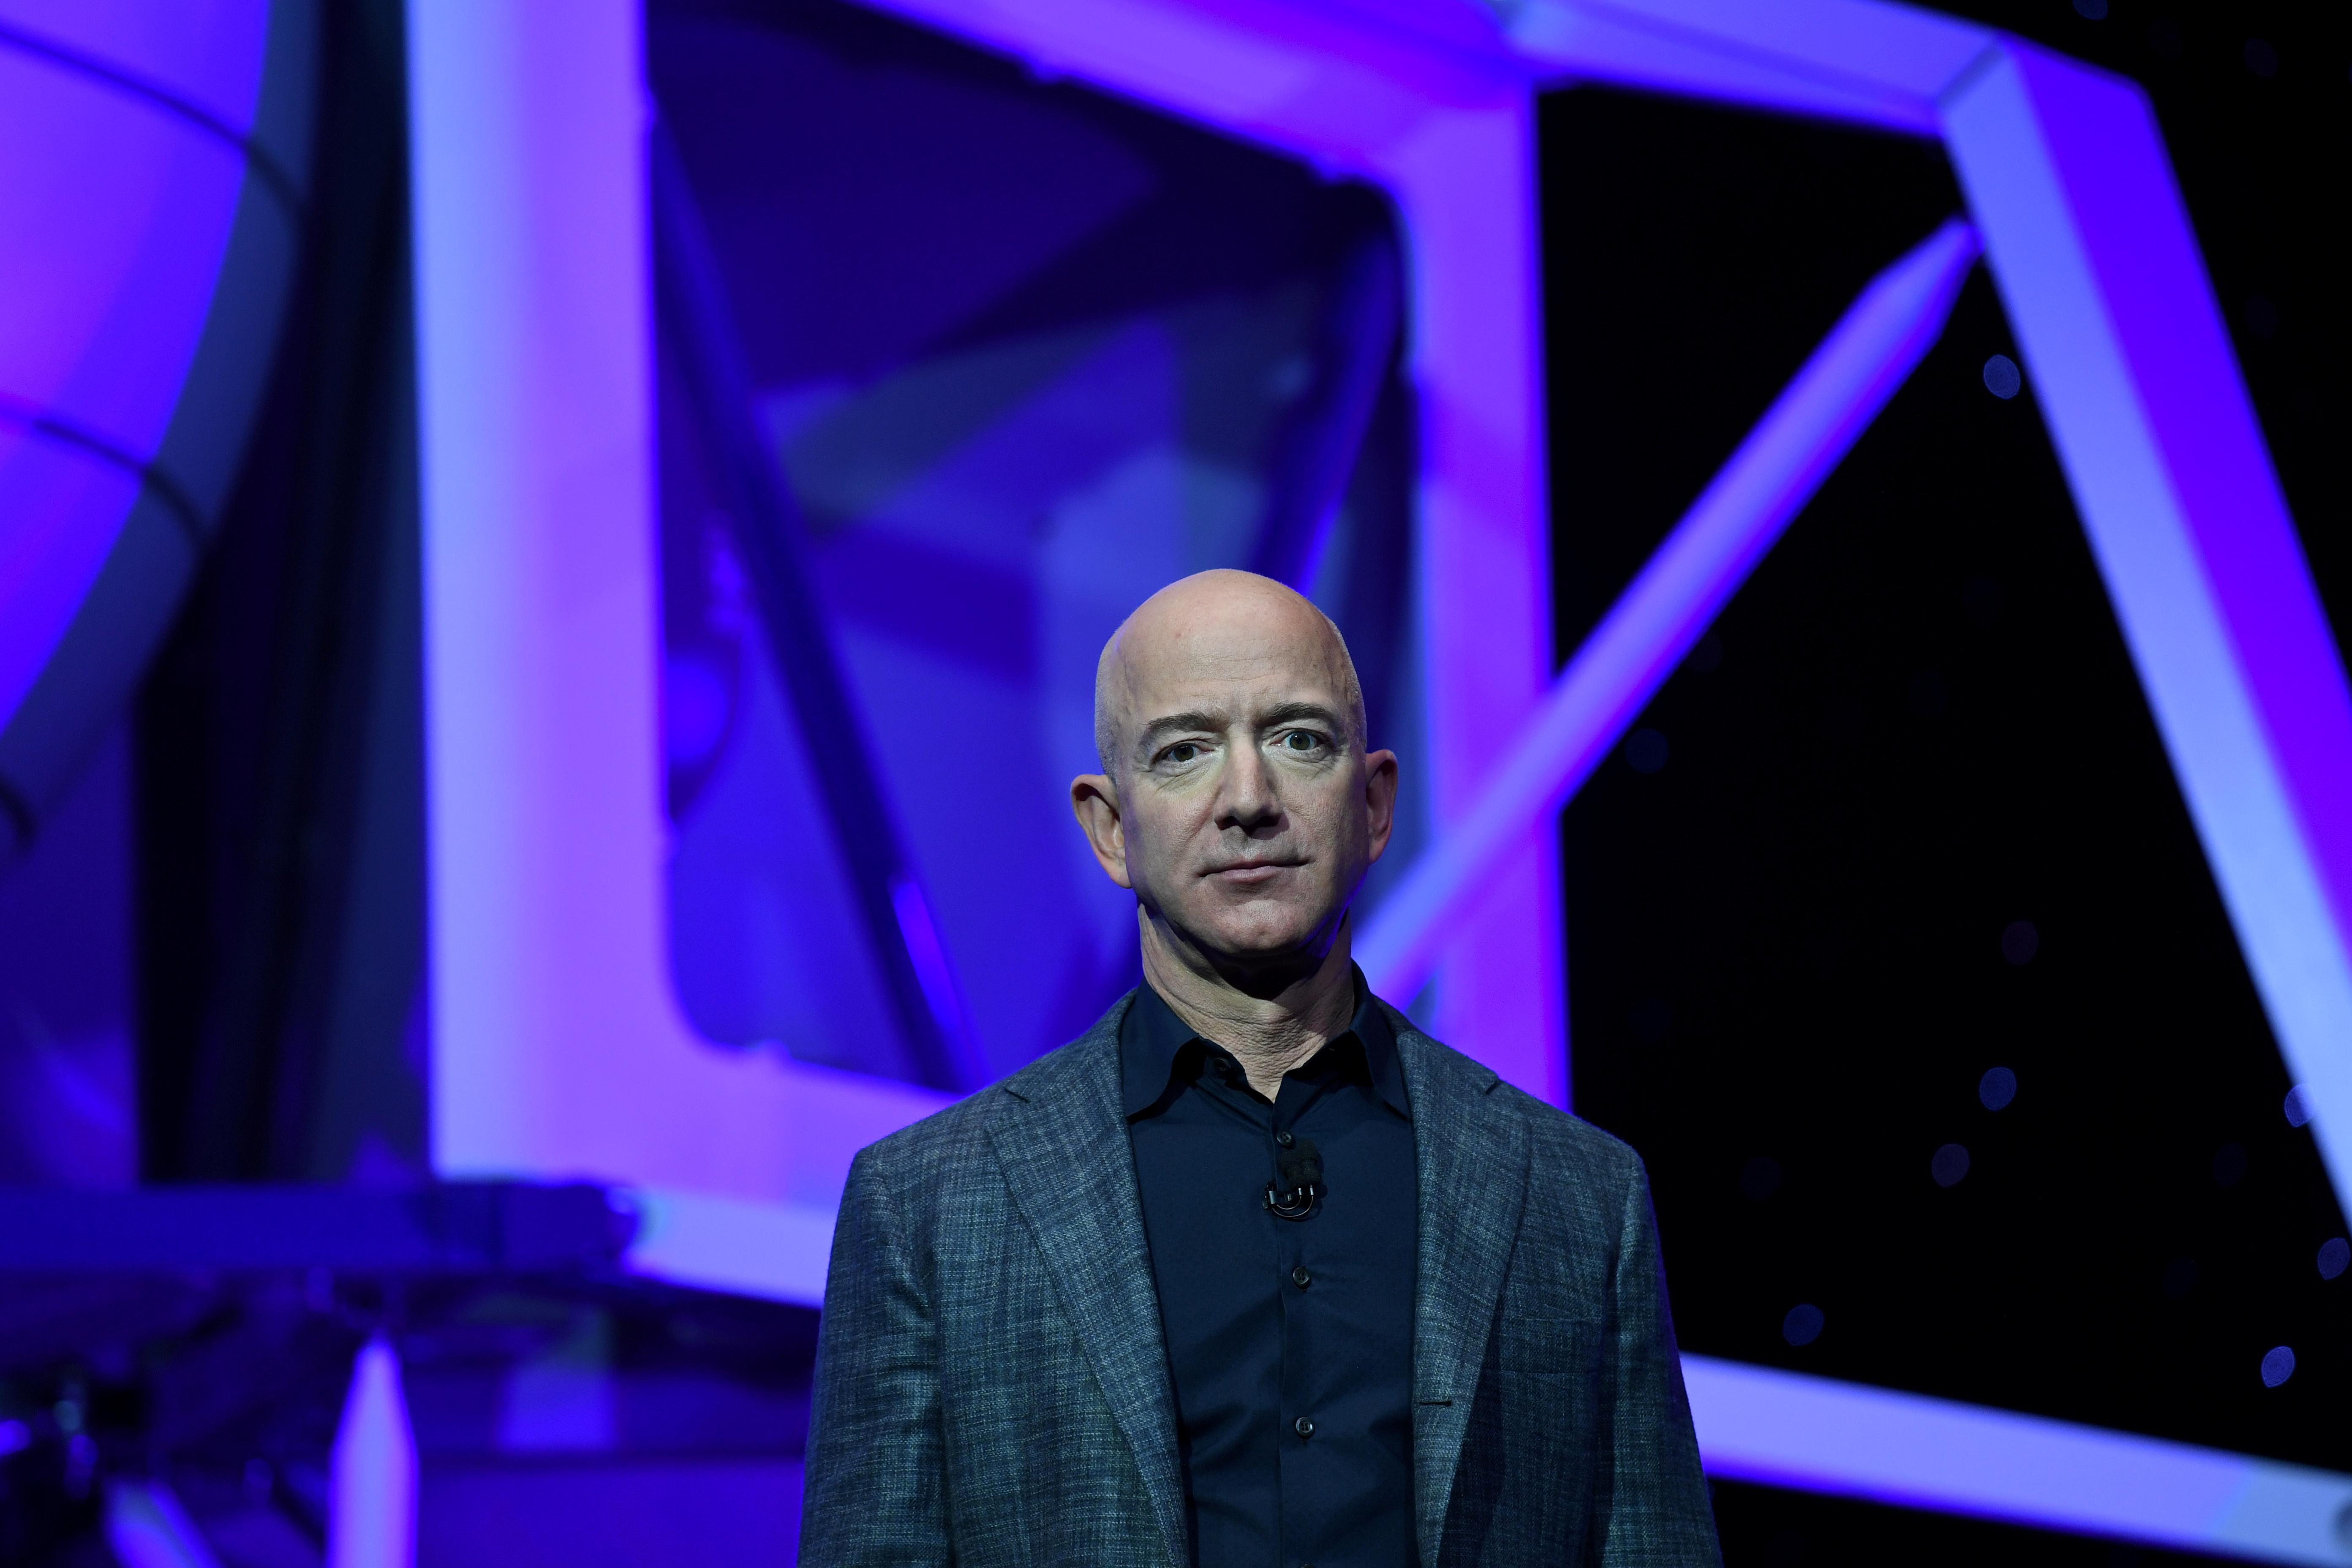 Founder, Chairman, CEO and President of Amazon Jeff Bezos unveils his space company Blue Origin's space exploration lunar lander rocket called Blue Moon during an unveiling event in Washington, U.S., May 9, 2019. REUTERS/Clodagh Kilcoyne/File Photo